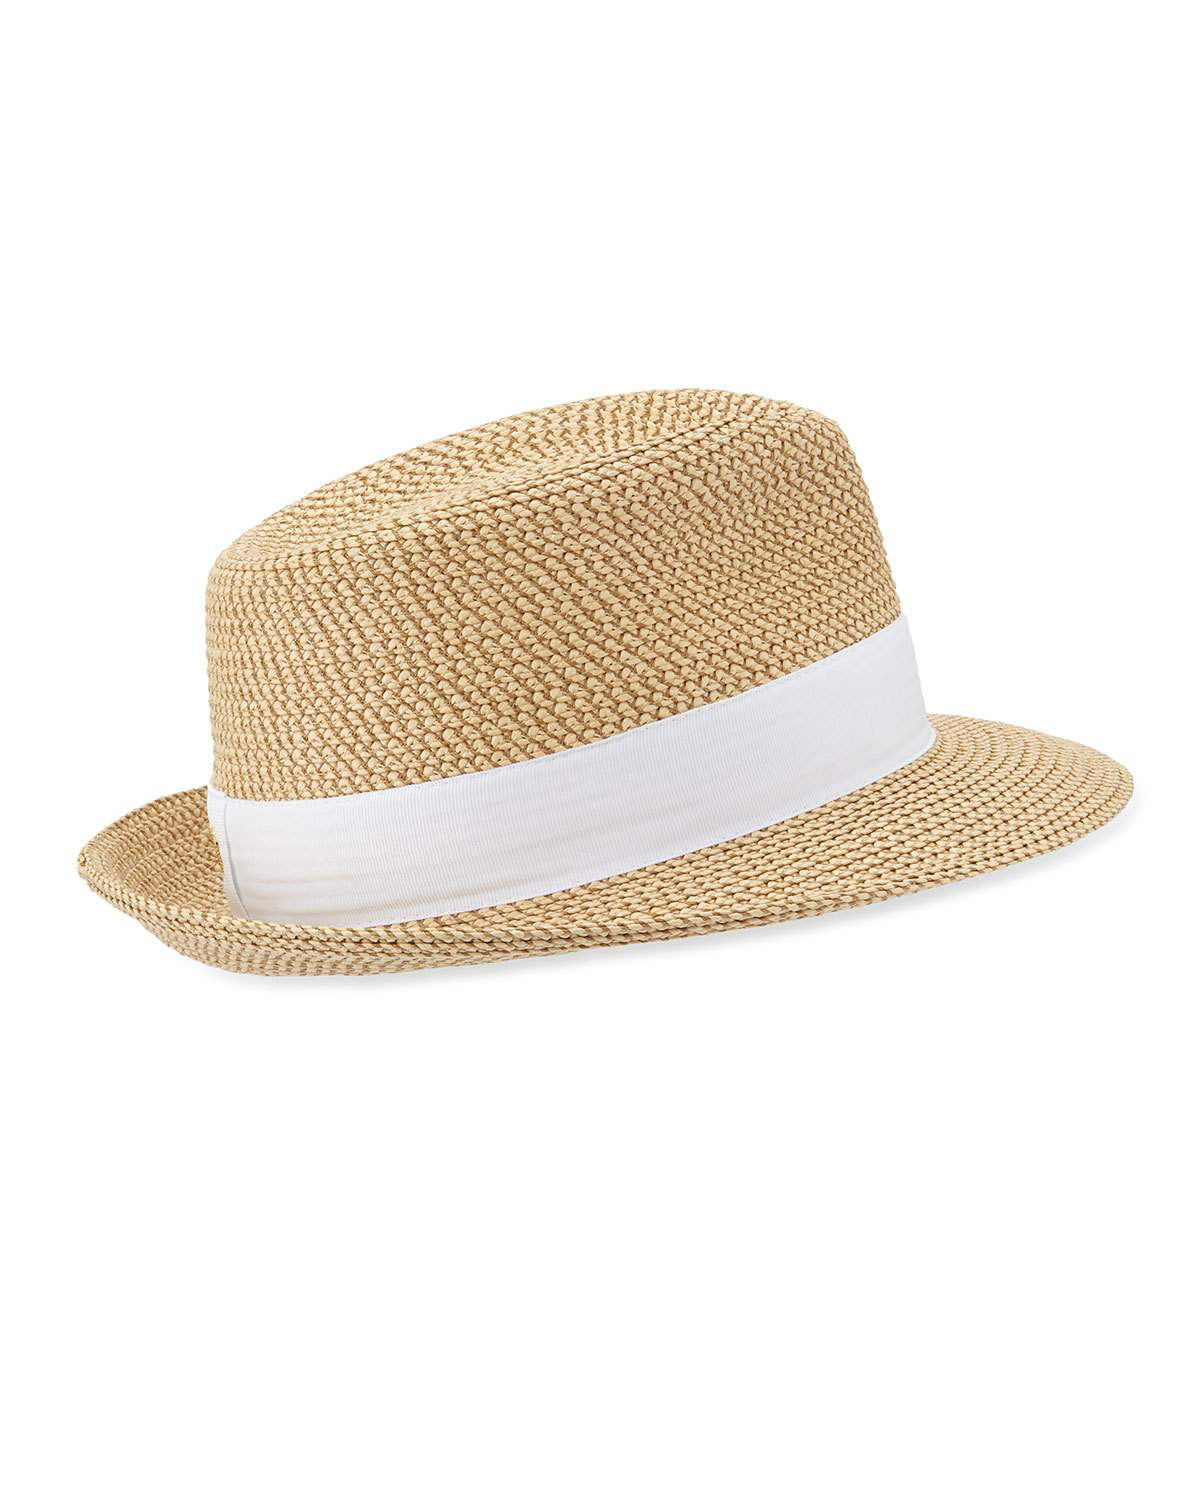 56cfeed3d5ae8 Eric Javits Squishee Classic Woven Fedora Hat In Peanut Blk Check ...